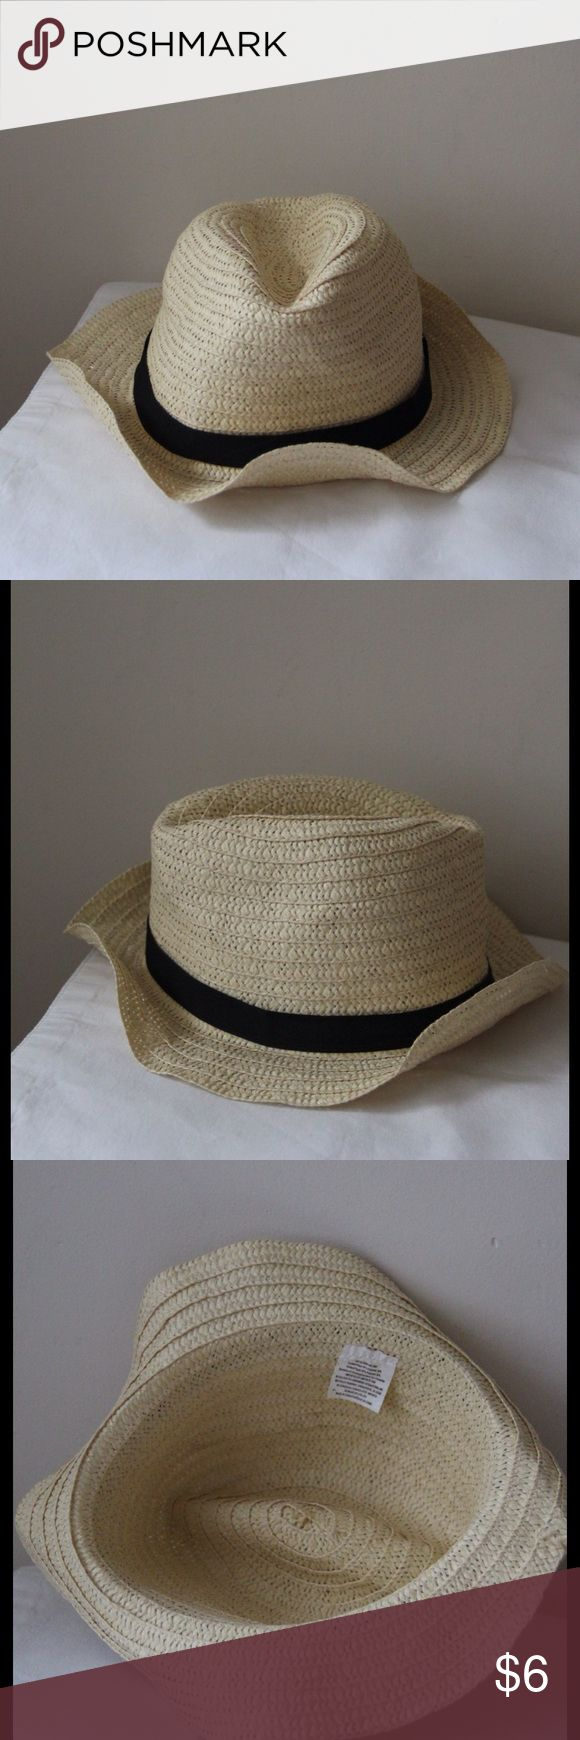 Fedora beach hat Fedora beach hat - like new! - perfect for summer! Accessories Hats